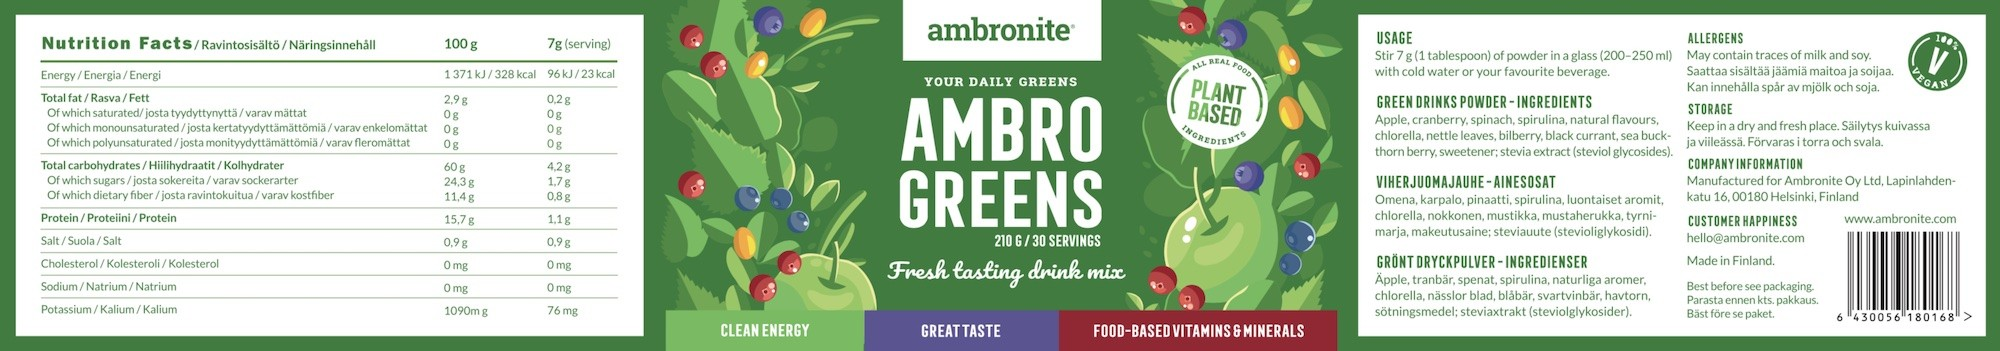 Ambro Green Nutrition Label